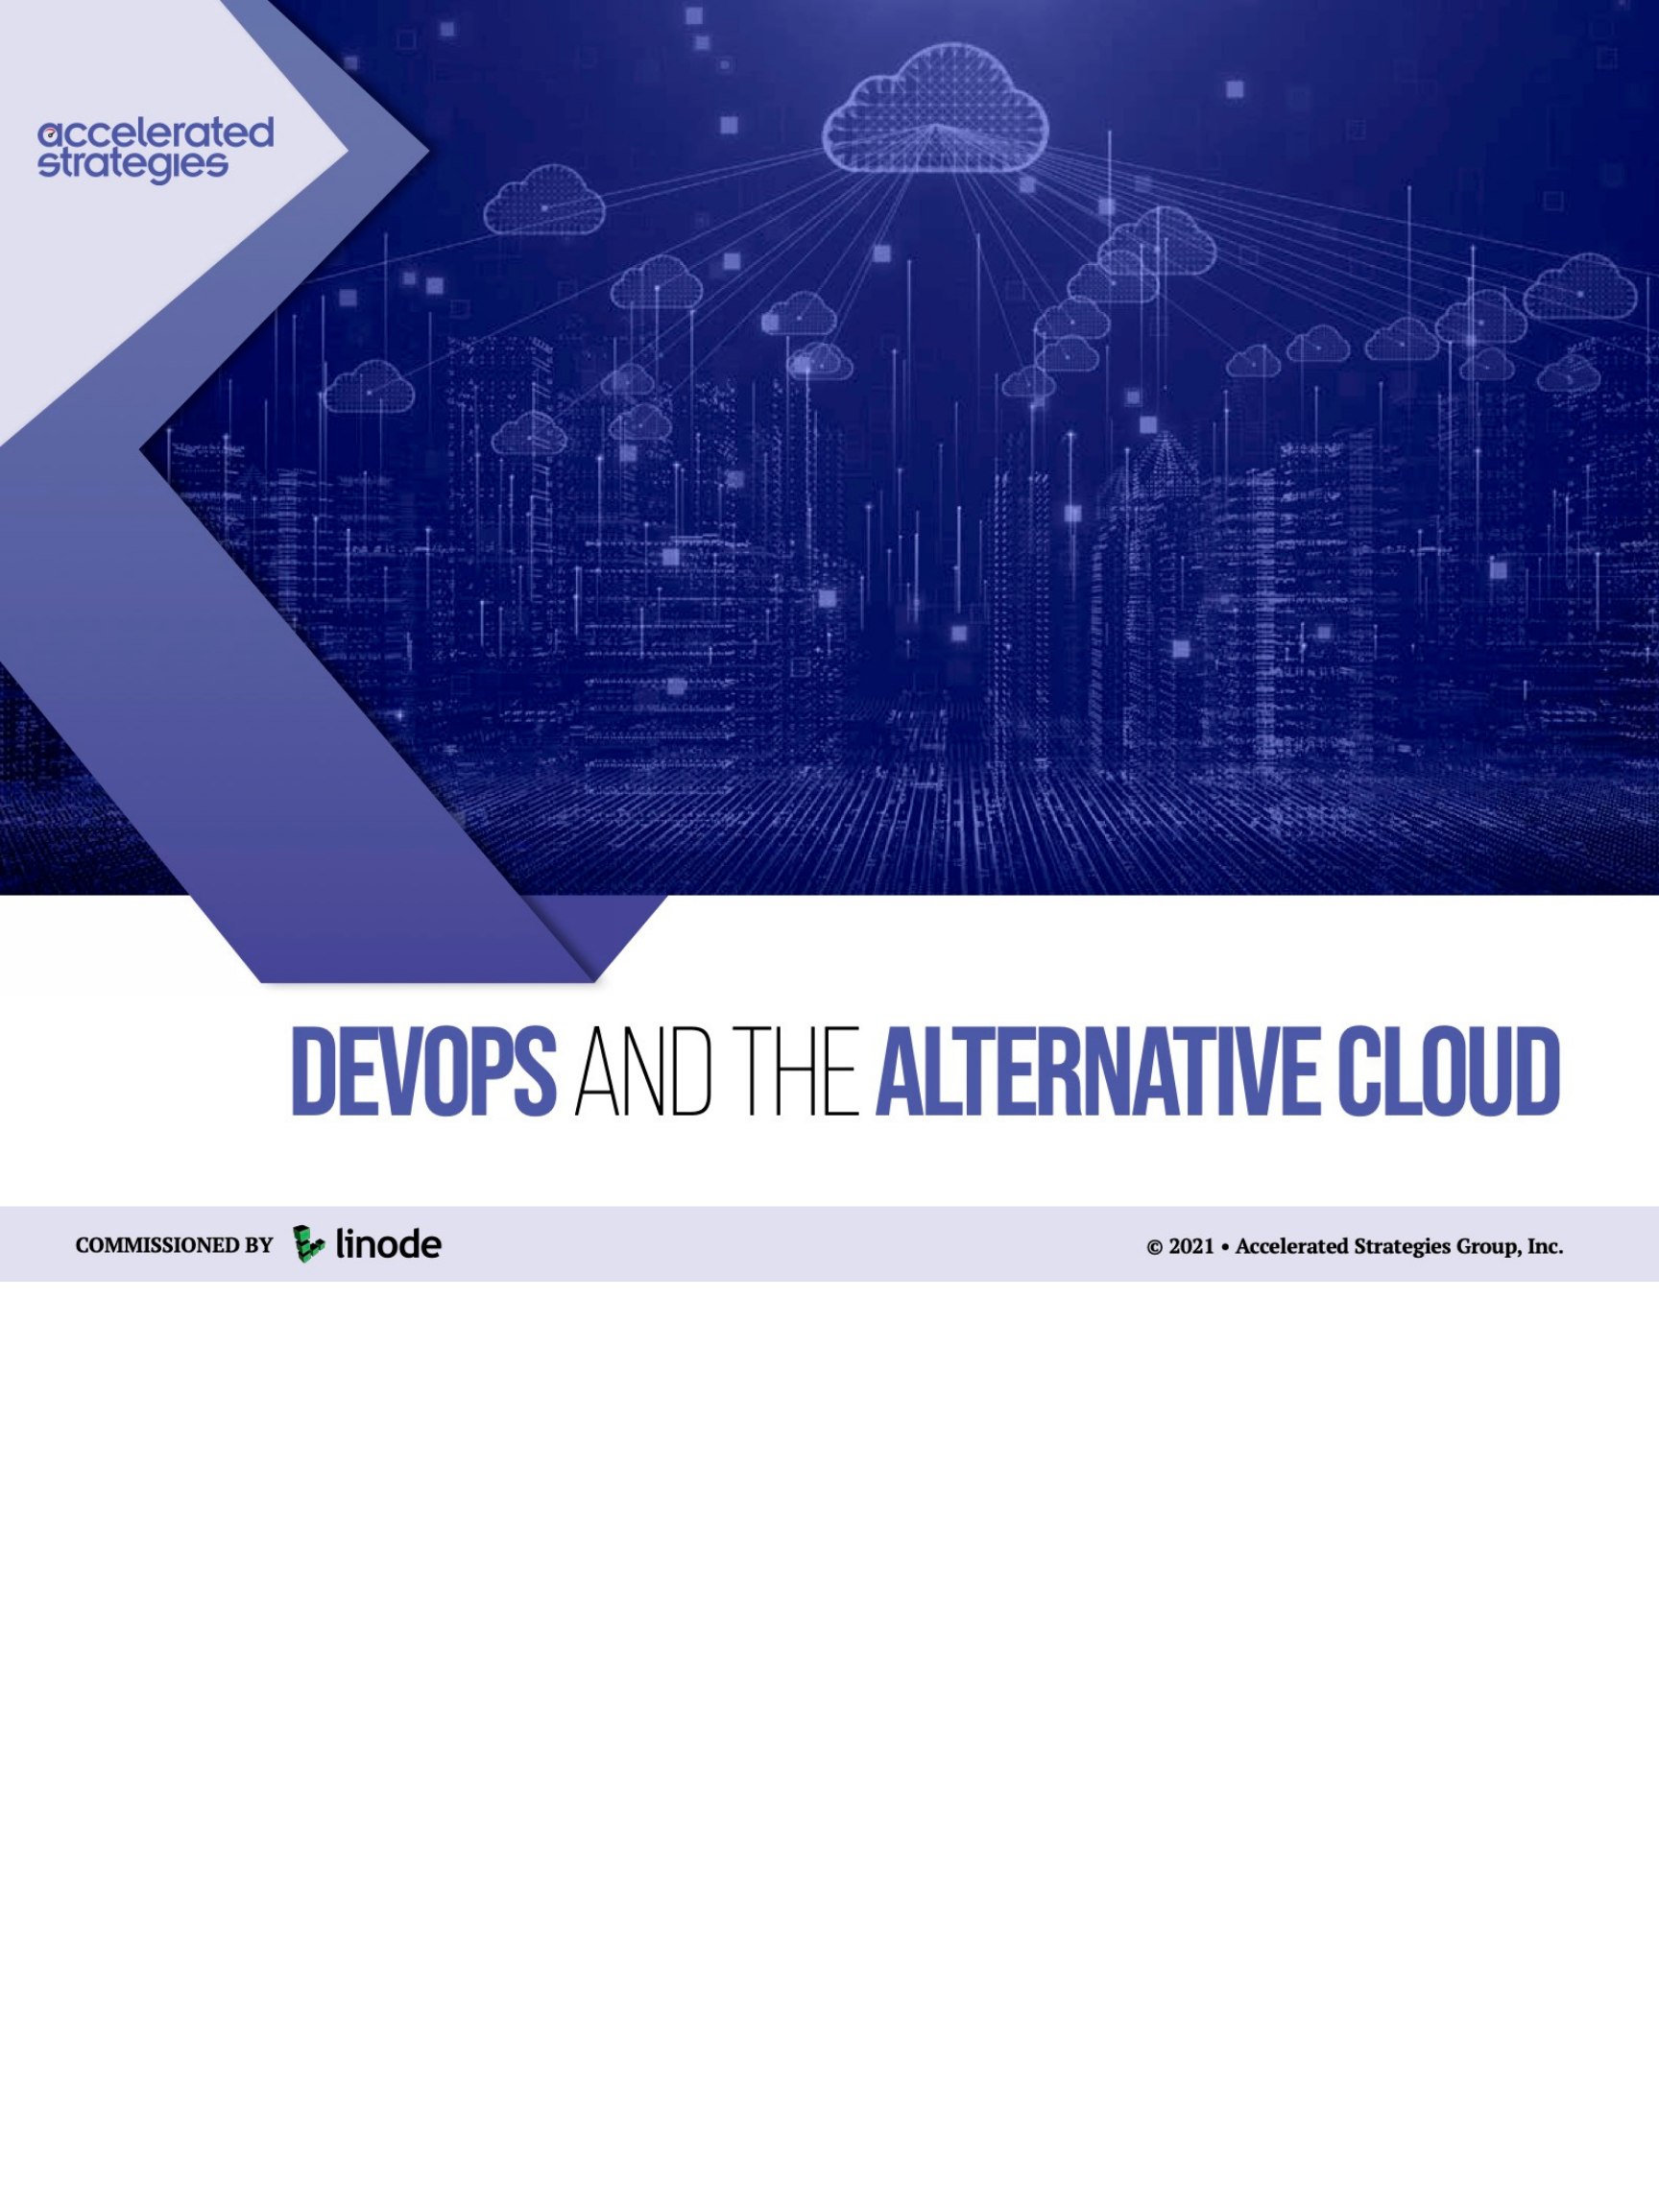 DevOps and the Alternative Cloud Report - Accelerated Strategies Group